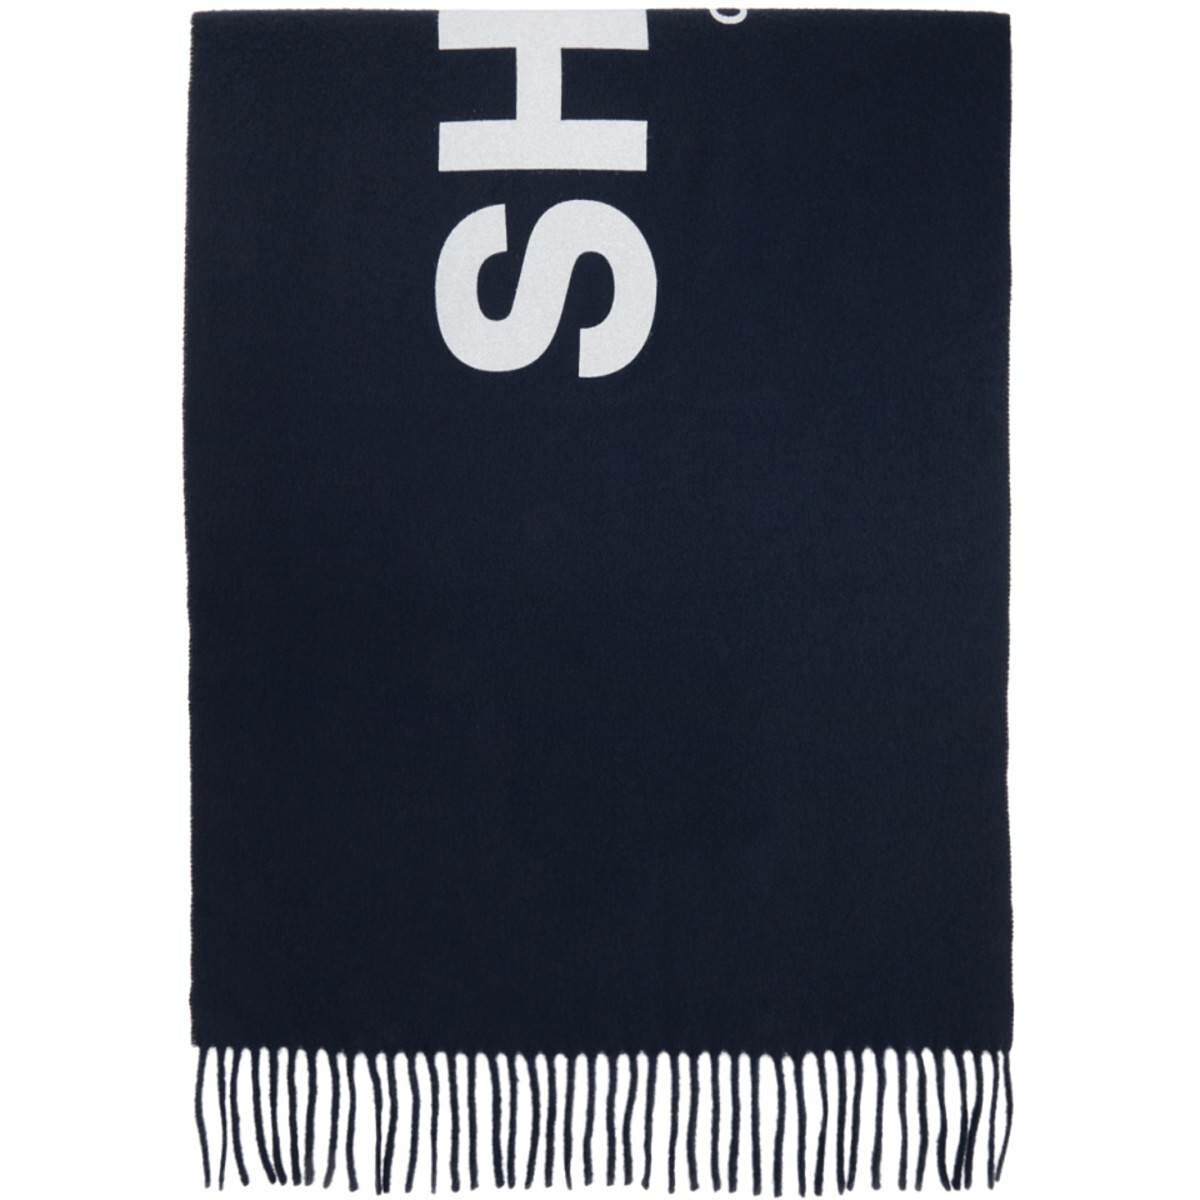 Comme des Garcons Shirt Navy Wool Logo Scarf Ssense USA MEN Men ACCESSORIES Mens SCARFS